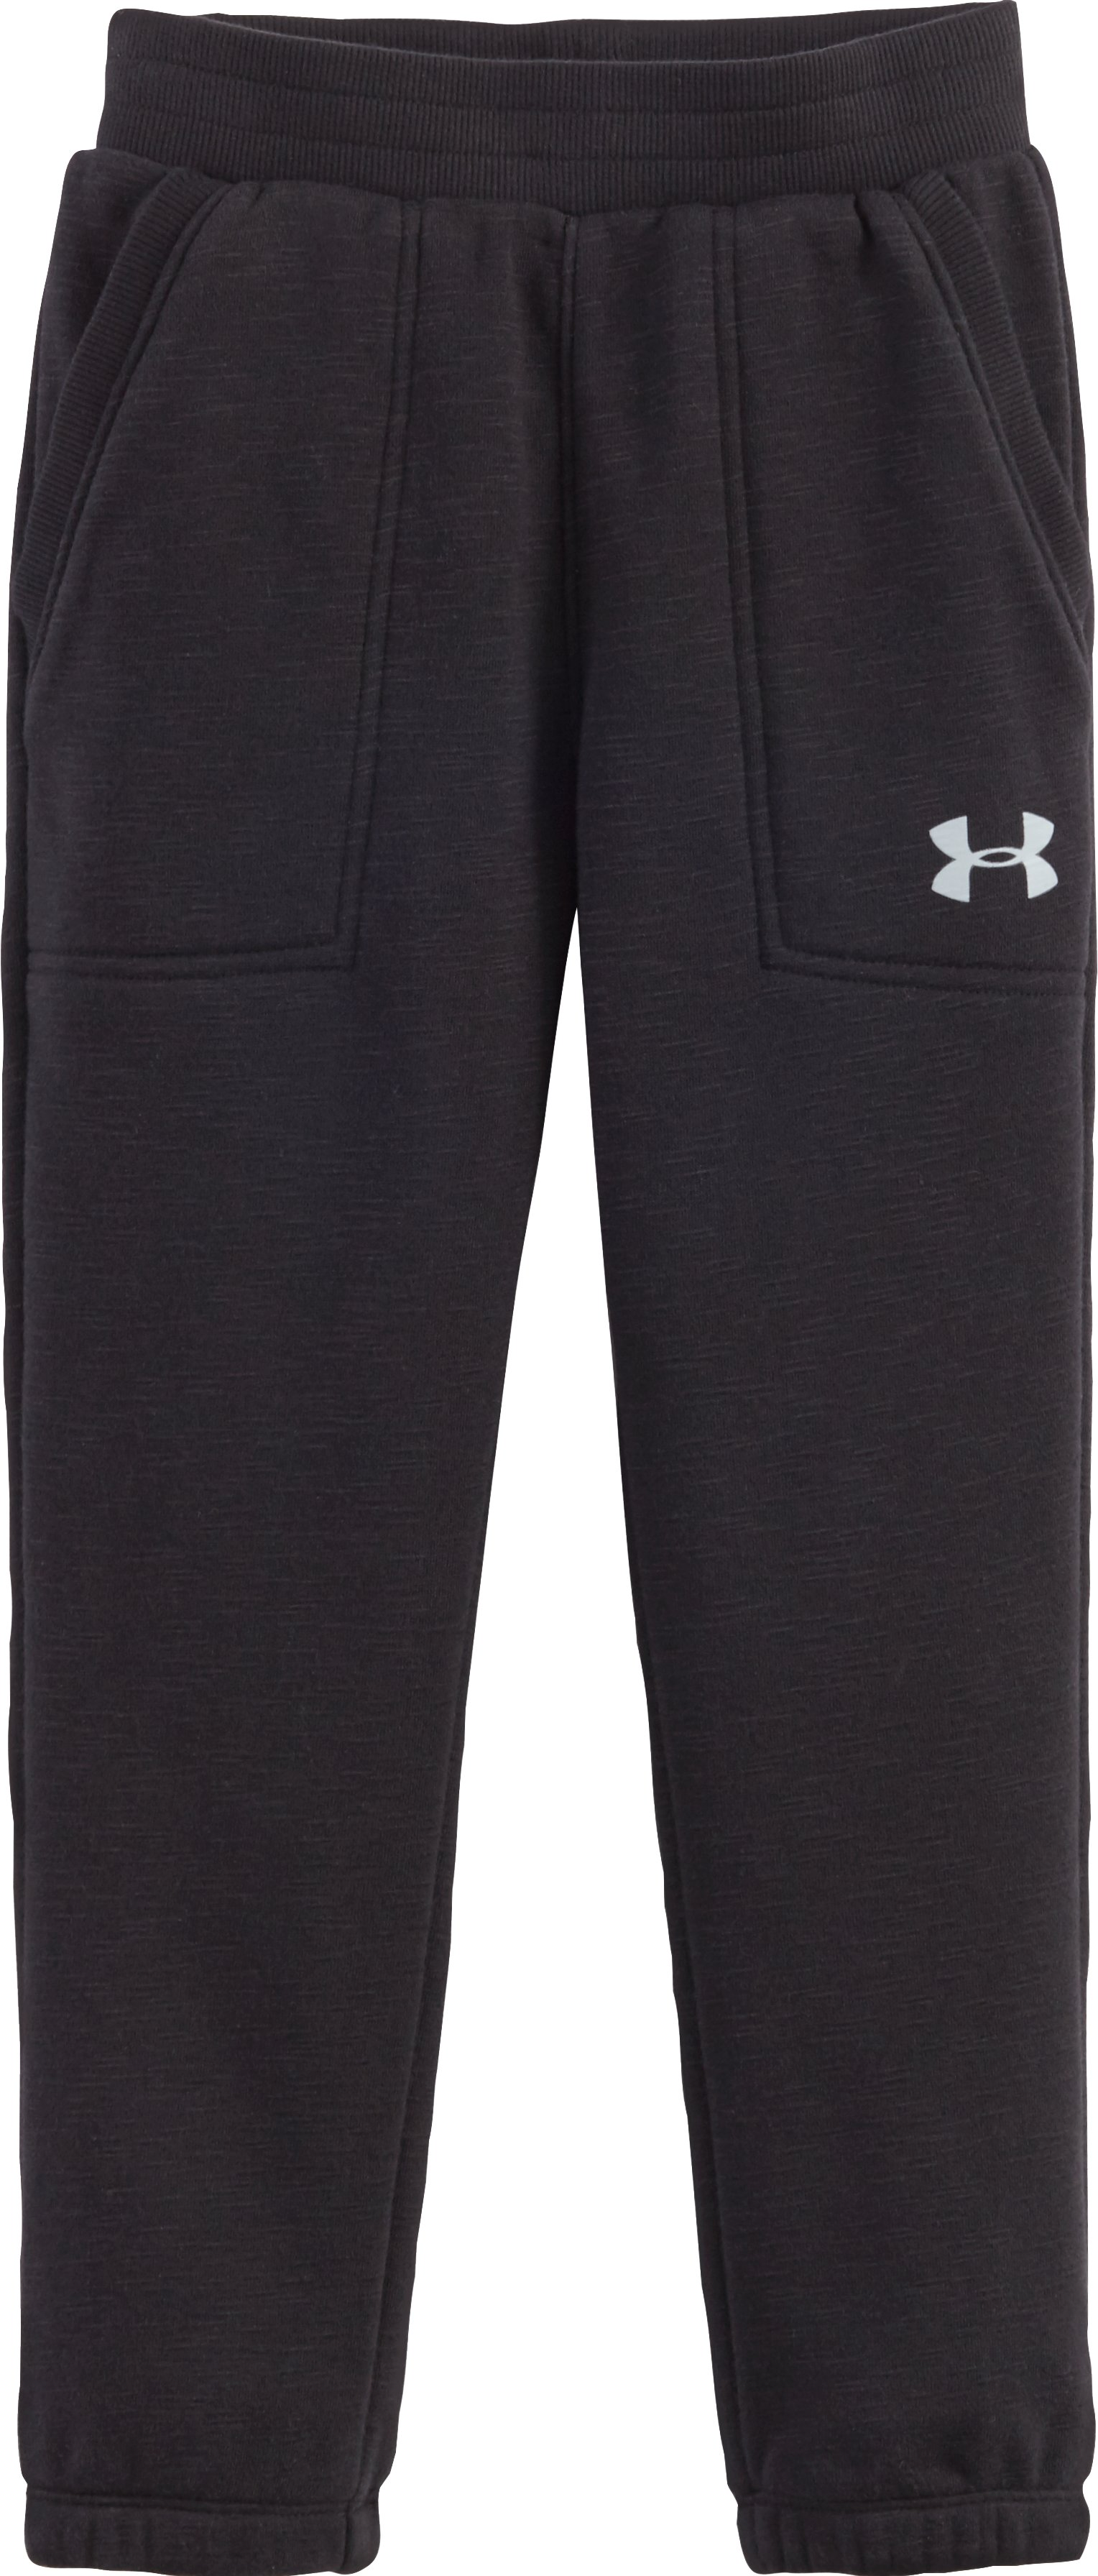 Boys' Pre-School UA French Terry Joggers, Black